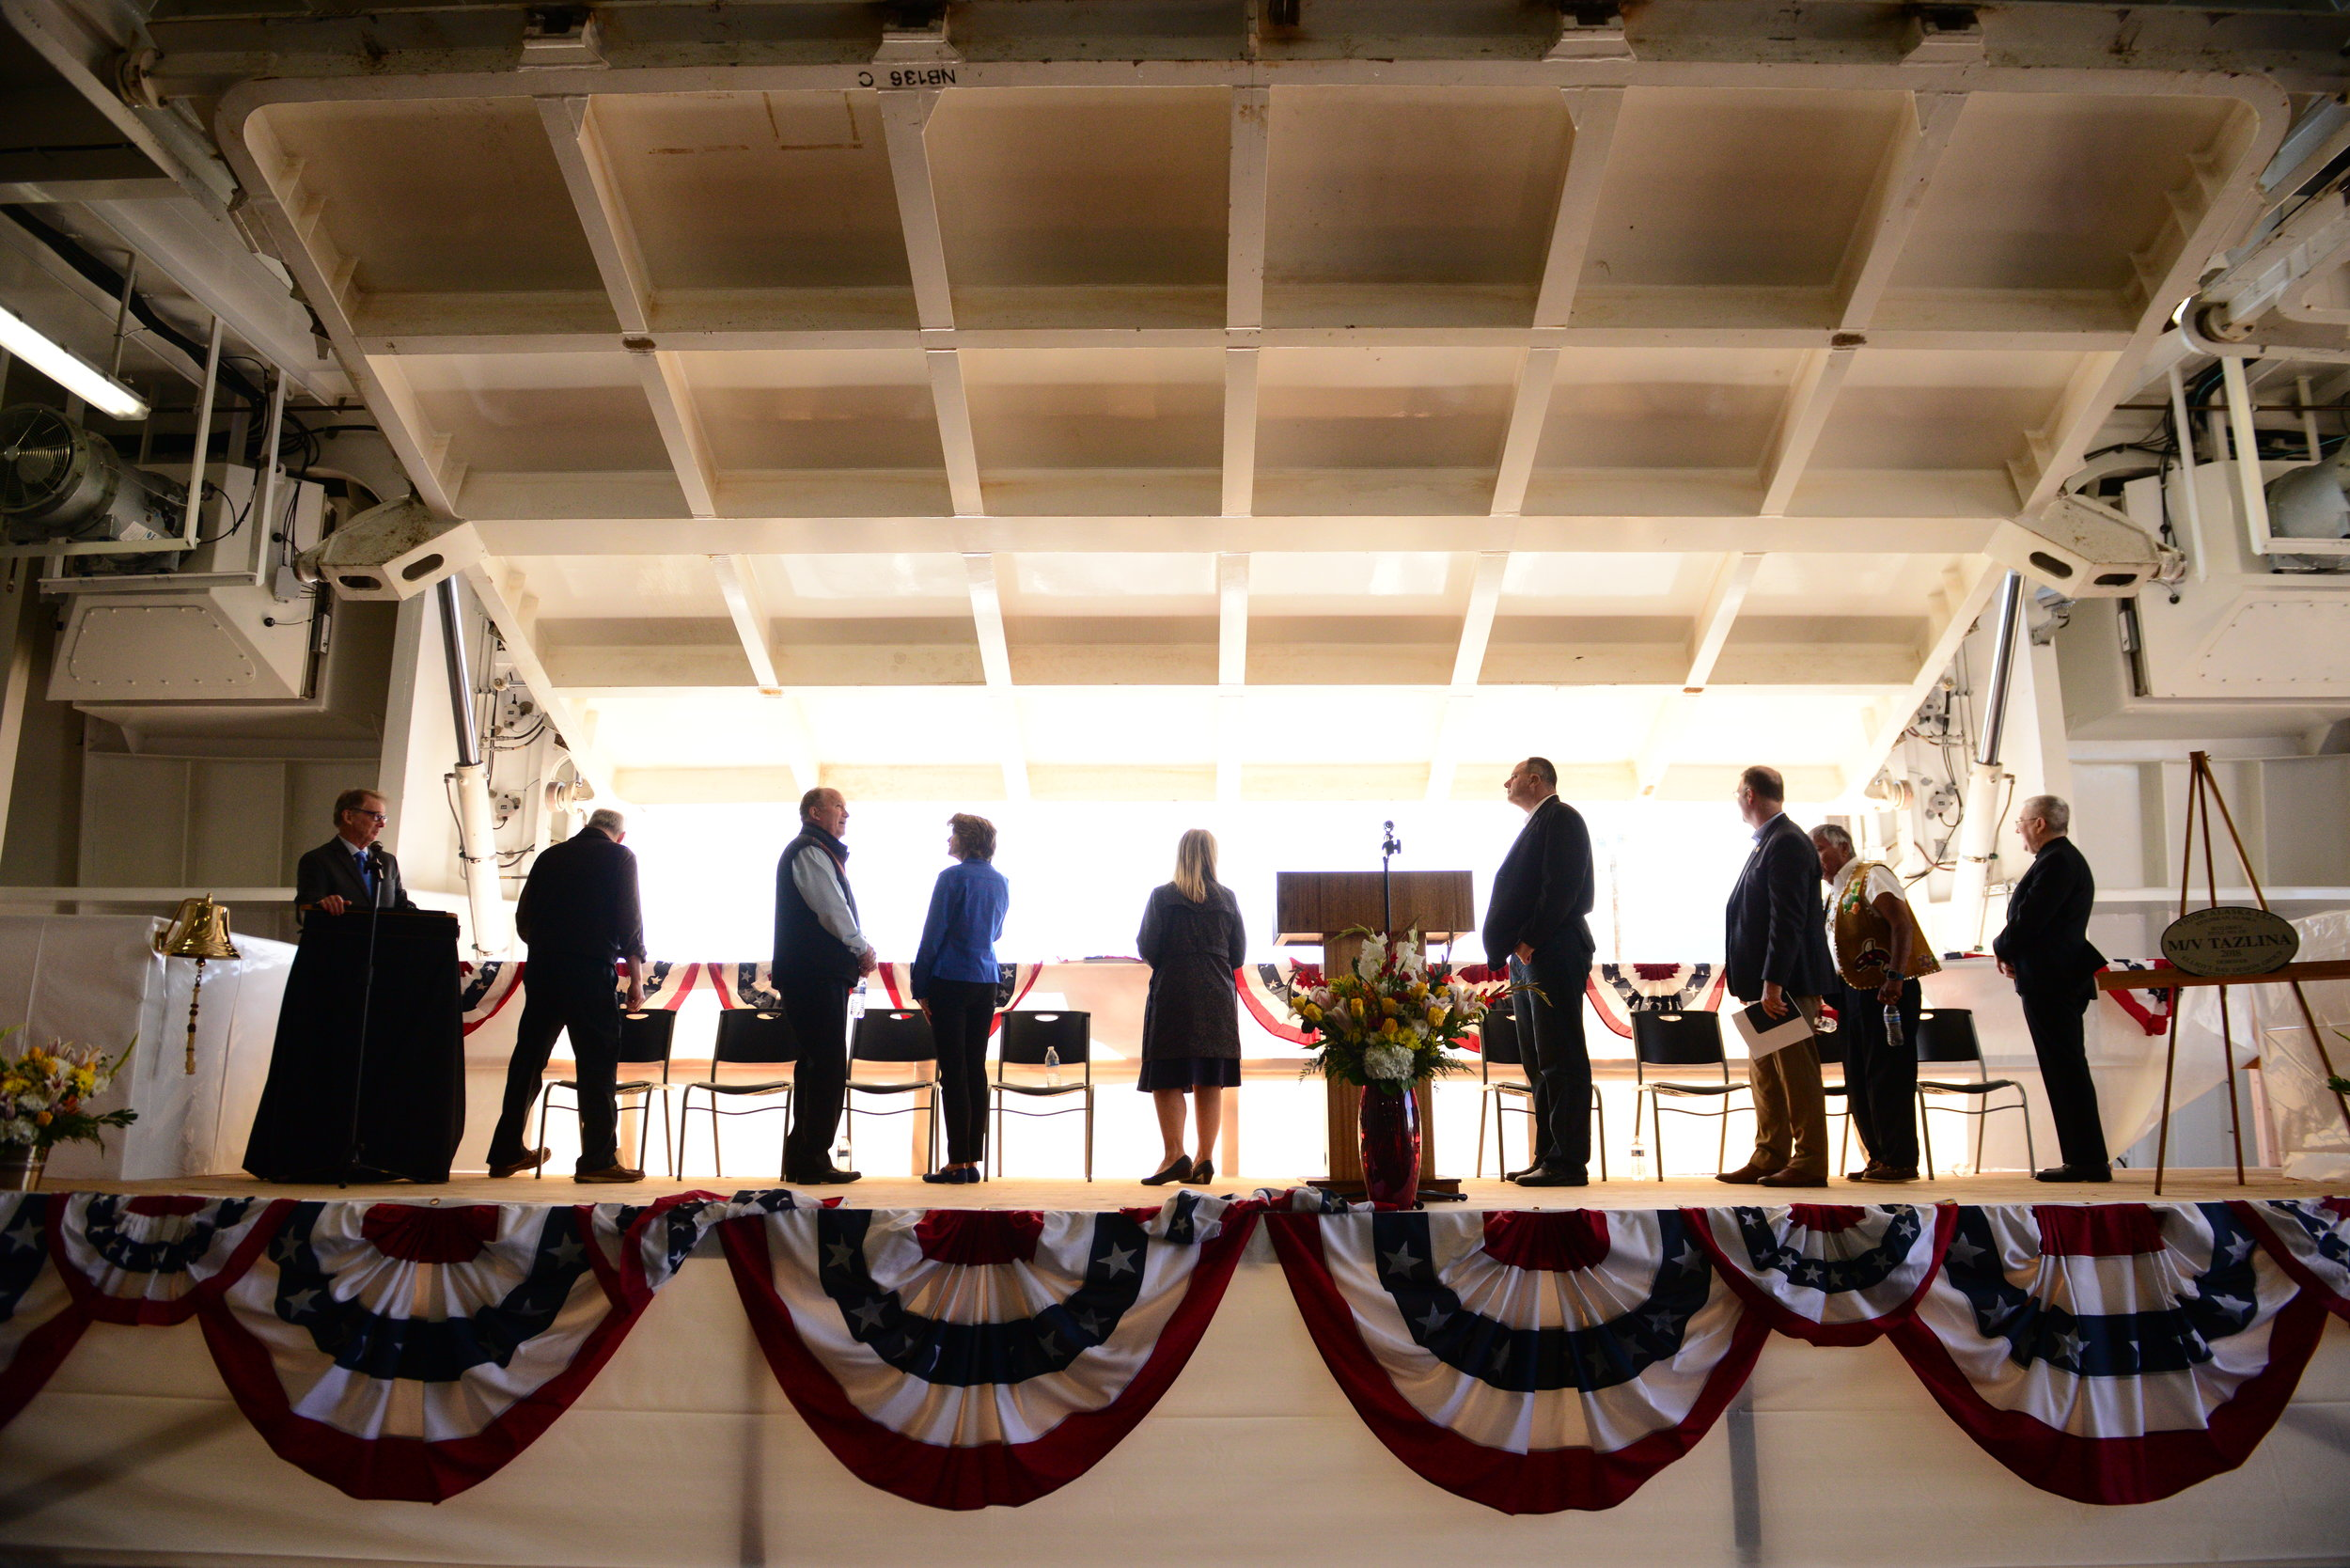 Representatives including Gov. Bill Walker, First Lady Donna Walker, Senator Bert Stedman, and Senator Lisa Murkowski are silhouetted as the rear loading dock of the Alaska Marine Highway's newest vessel, the M/V Tazlina, is opened to the sun during the ferry's christening at the Vigor Shipyard in Ketchikan. August 2018.